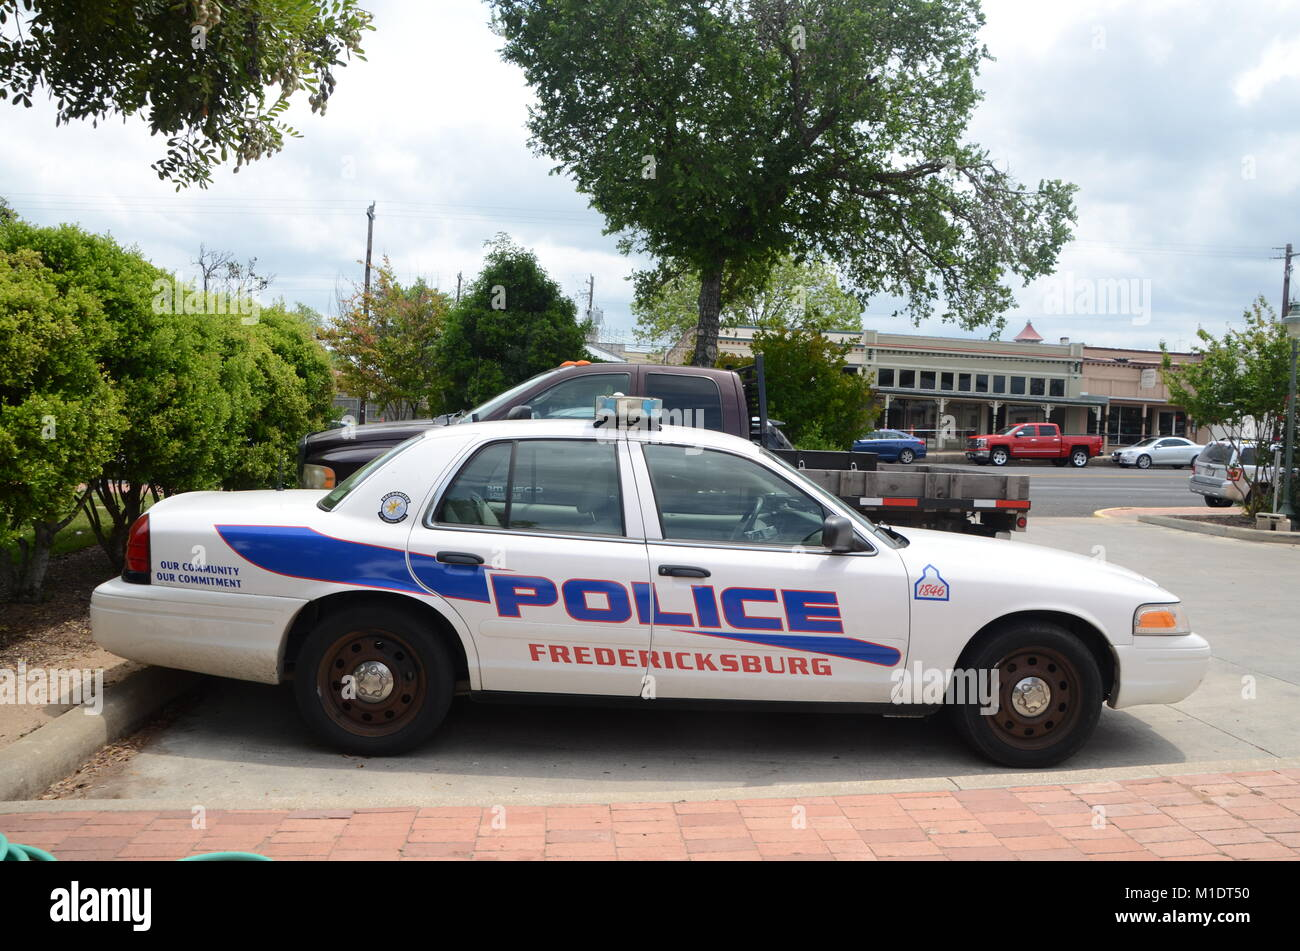 Small Town Police Cars Stock Photos & Small Town Police Cars